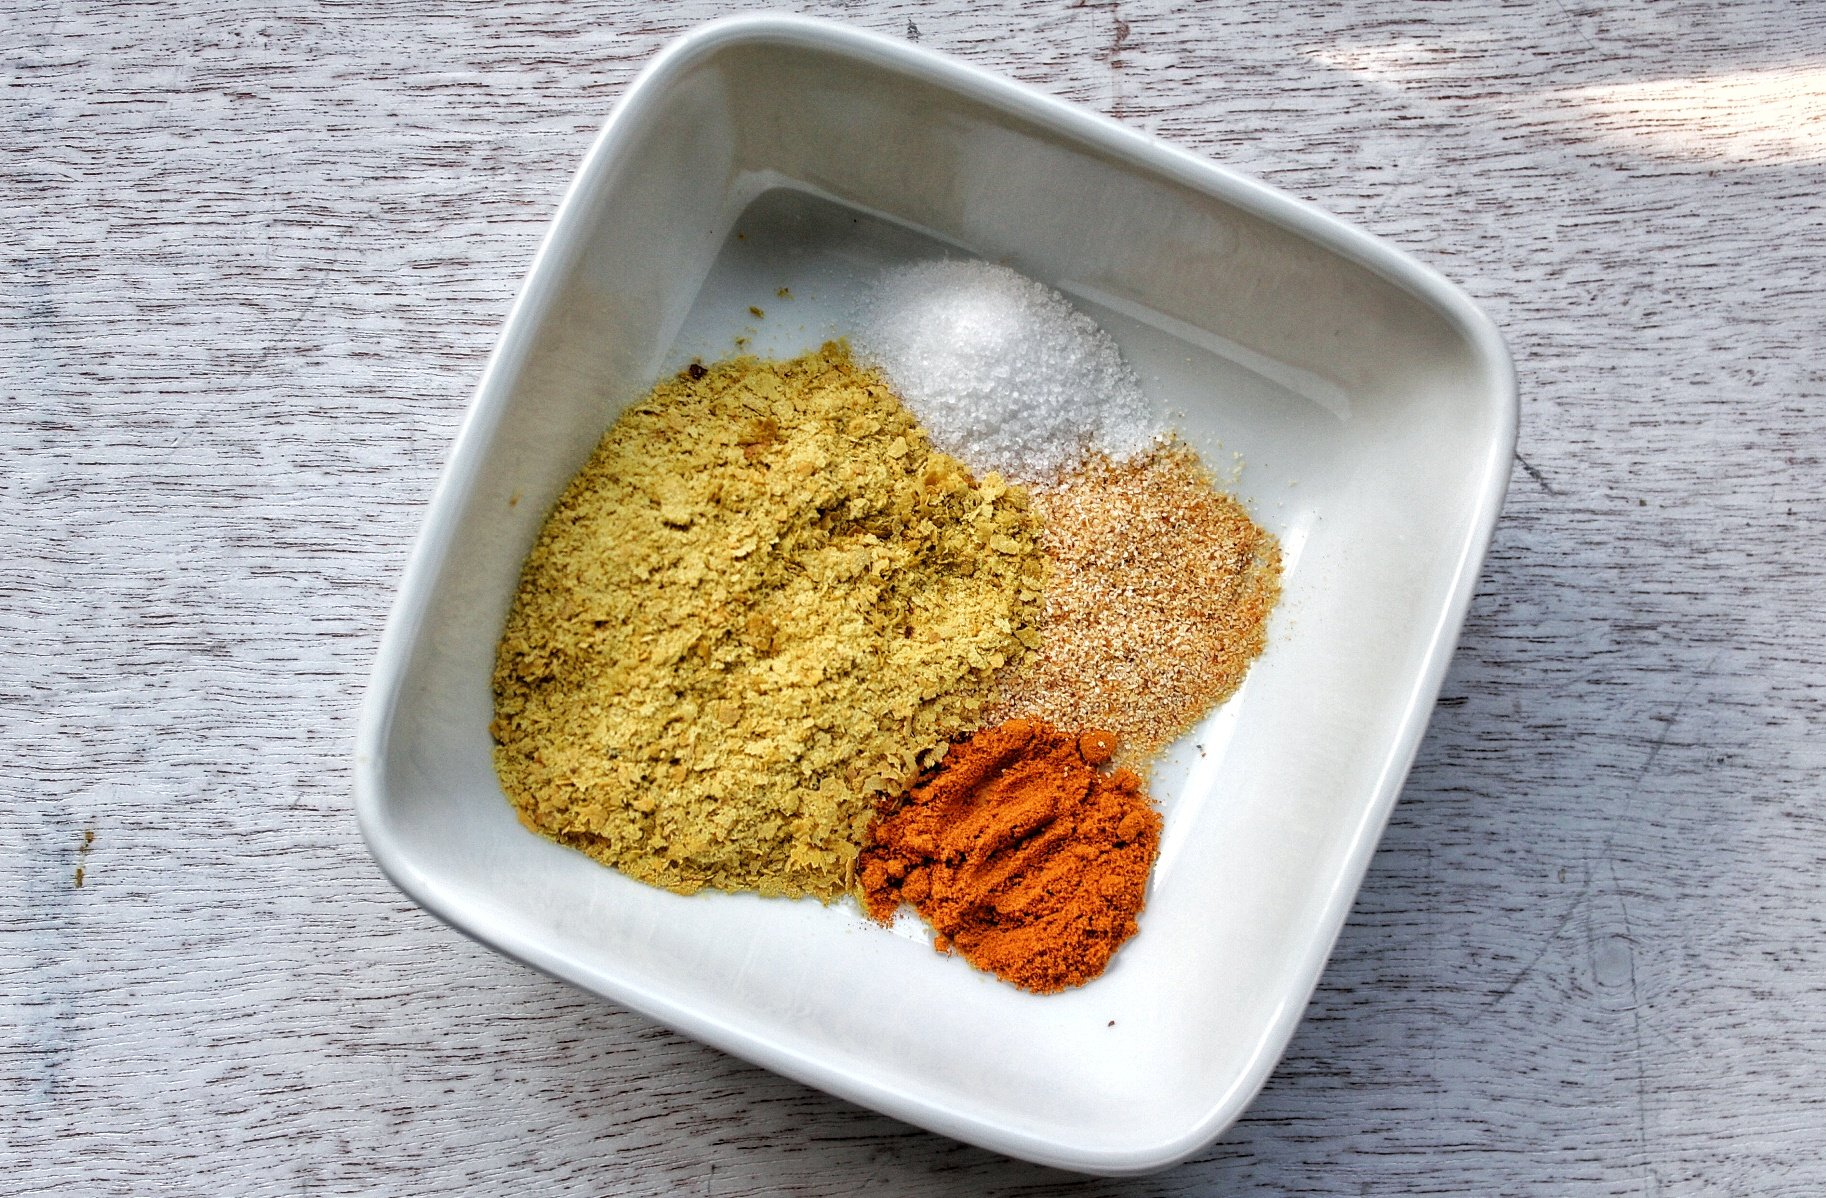 Nutritional yeast, salt, garlic powder, and turmeric in a small white glass bowl